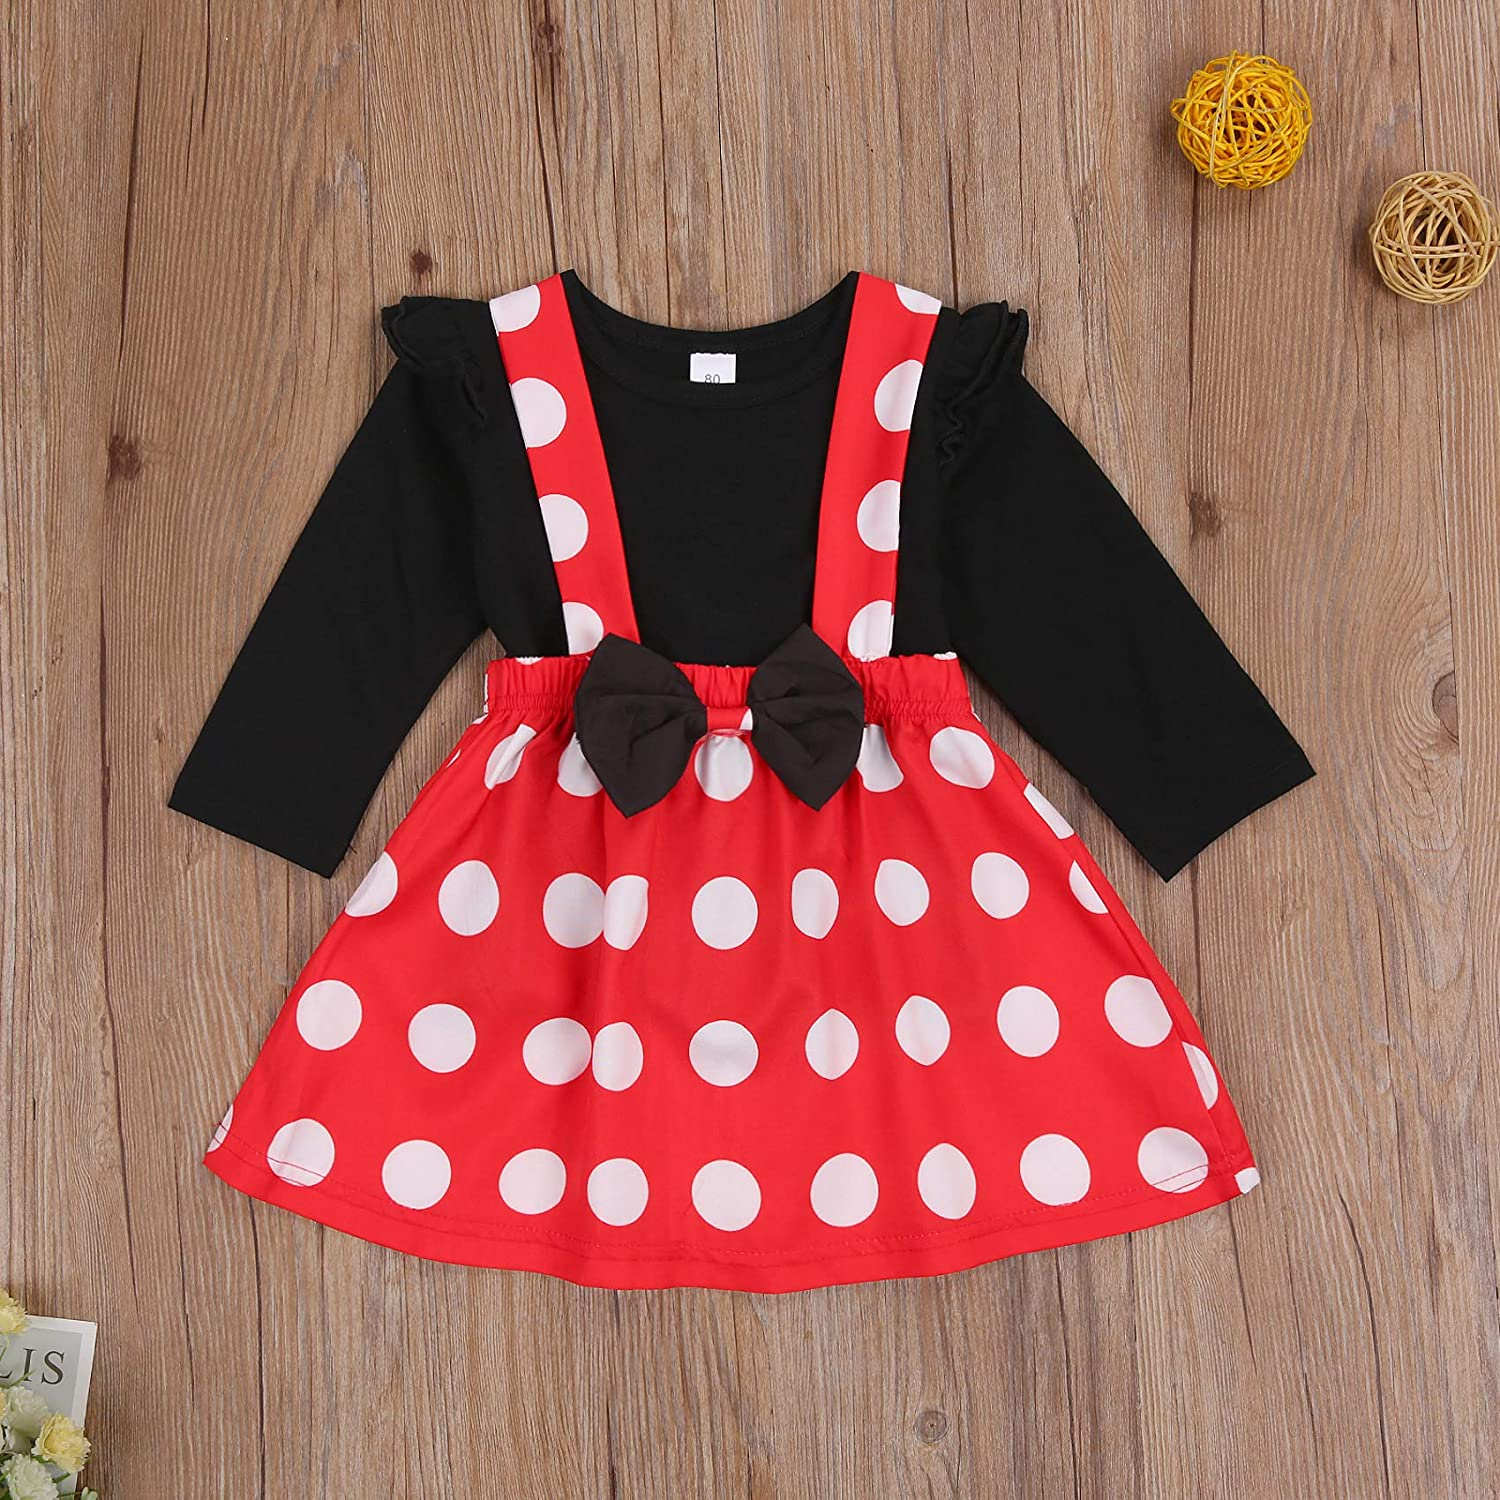 Toddler Baby Girl Suspender Skirt Sets Cotton Linen Top Ruffle Strap Overall Skirt Dress Set Outfit Fall Clothes